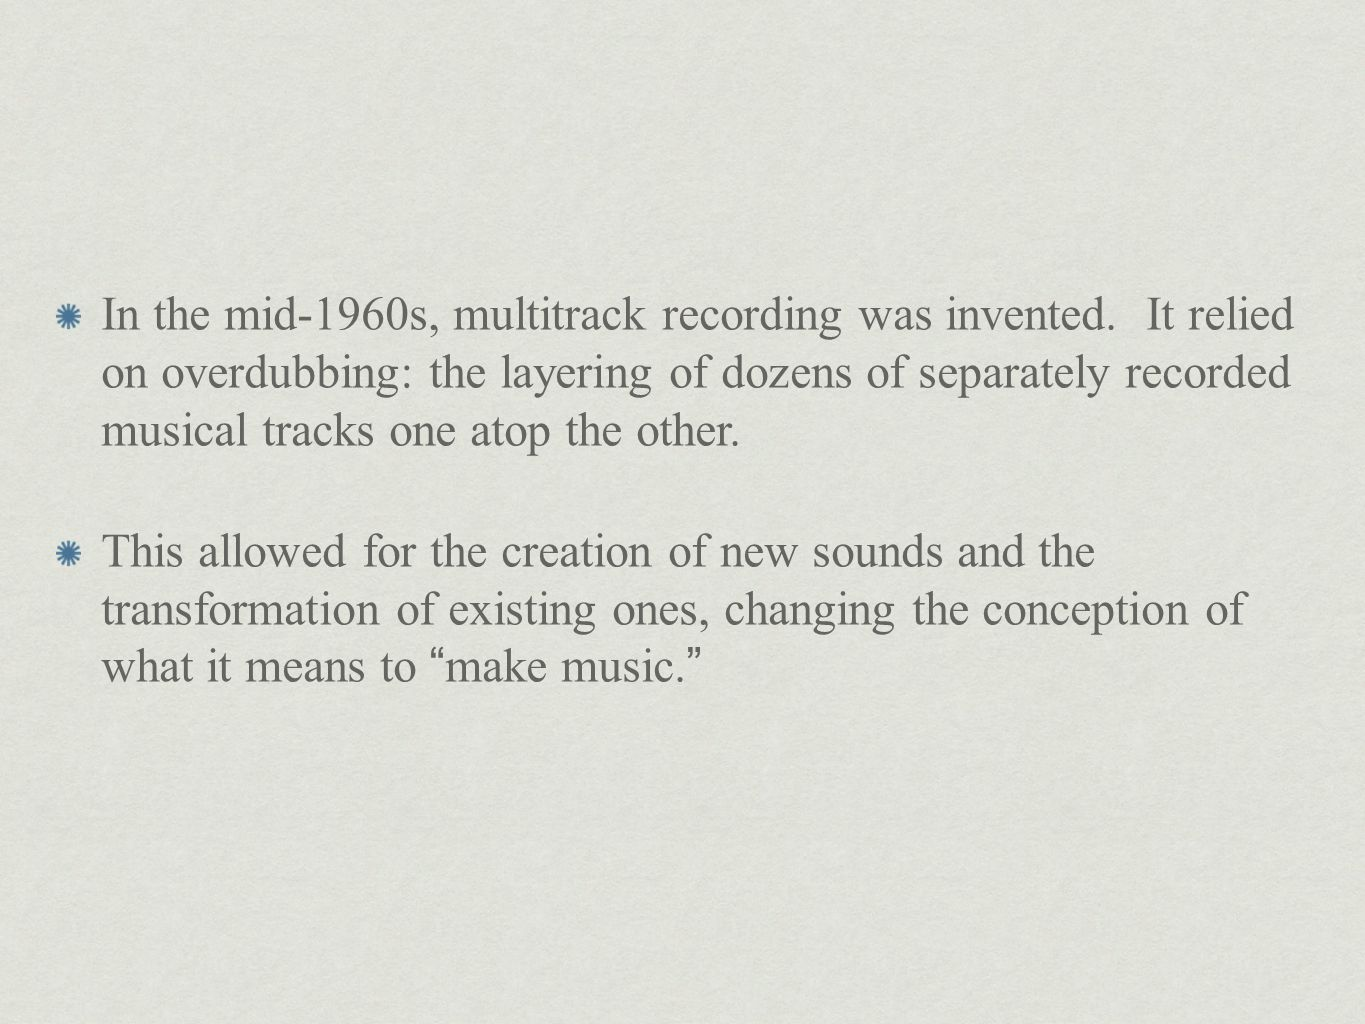 In the mid-1960s, multitrack recording was invented